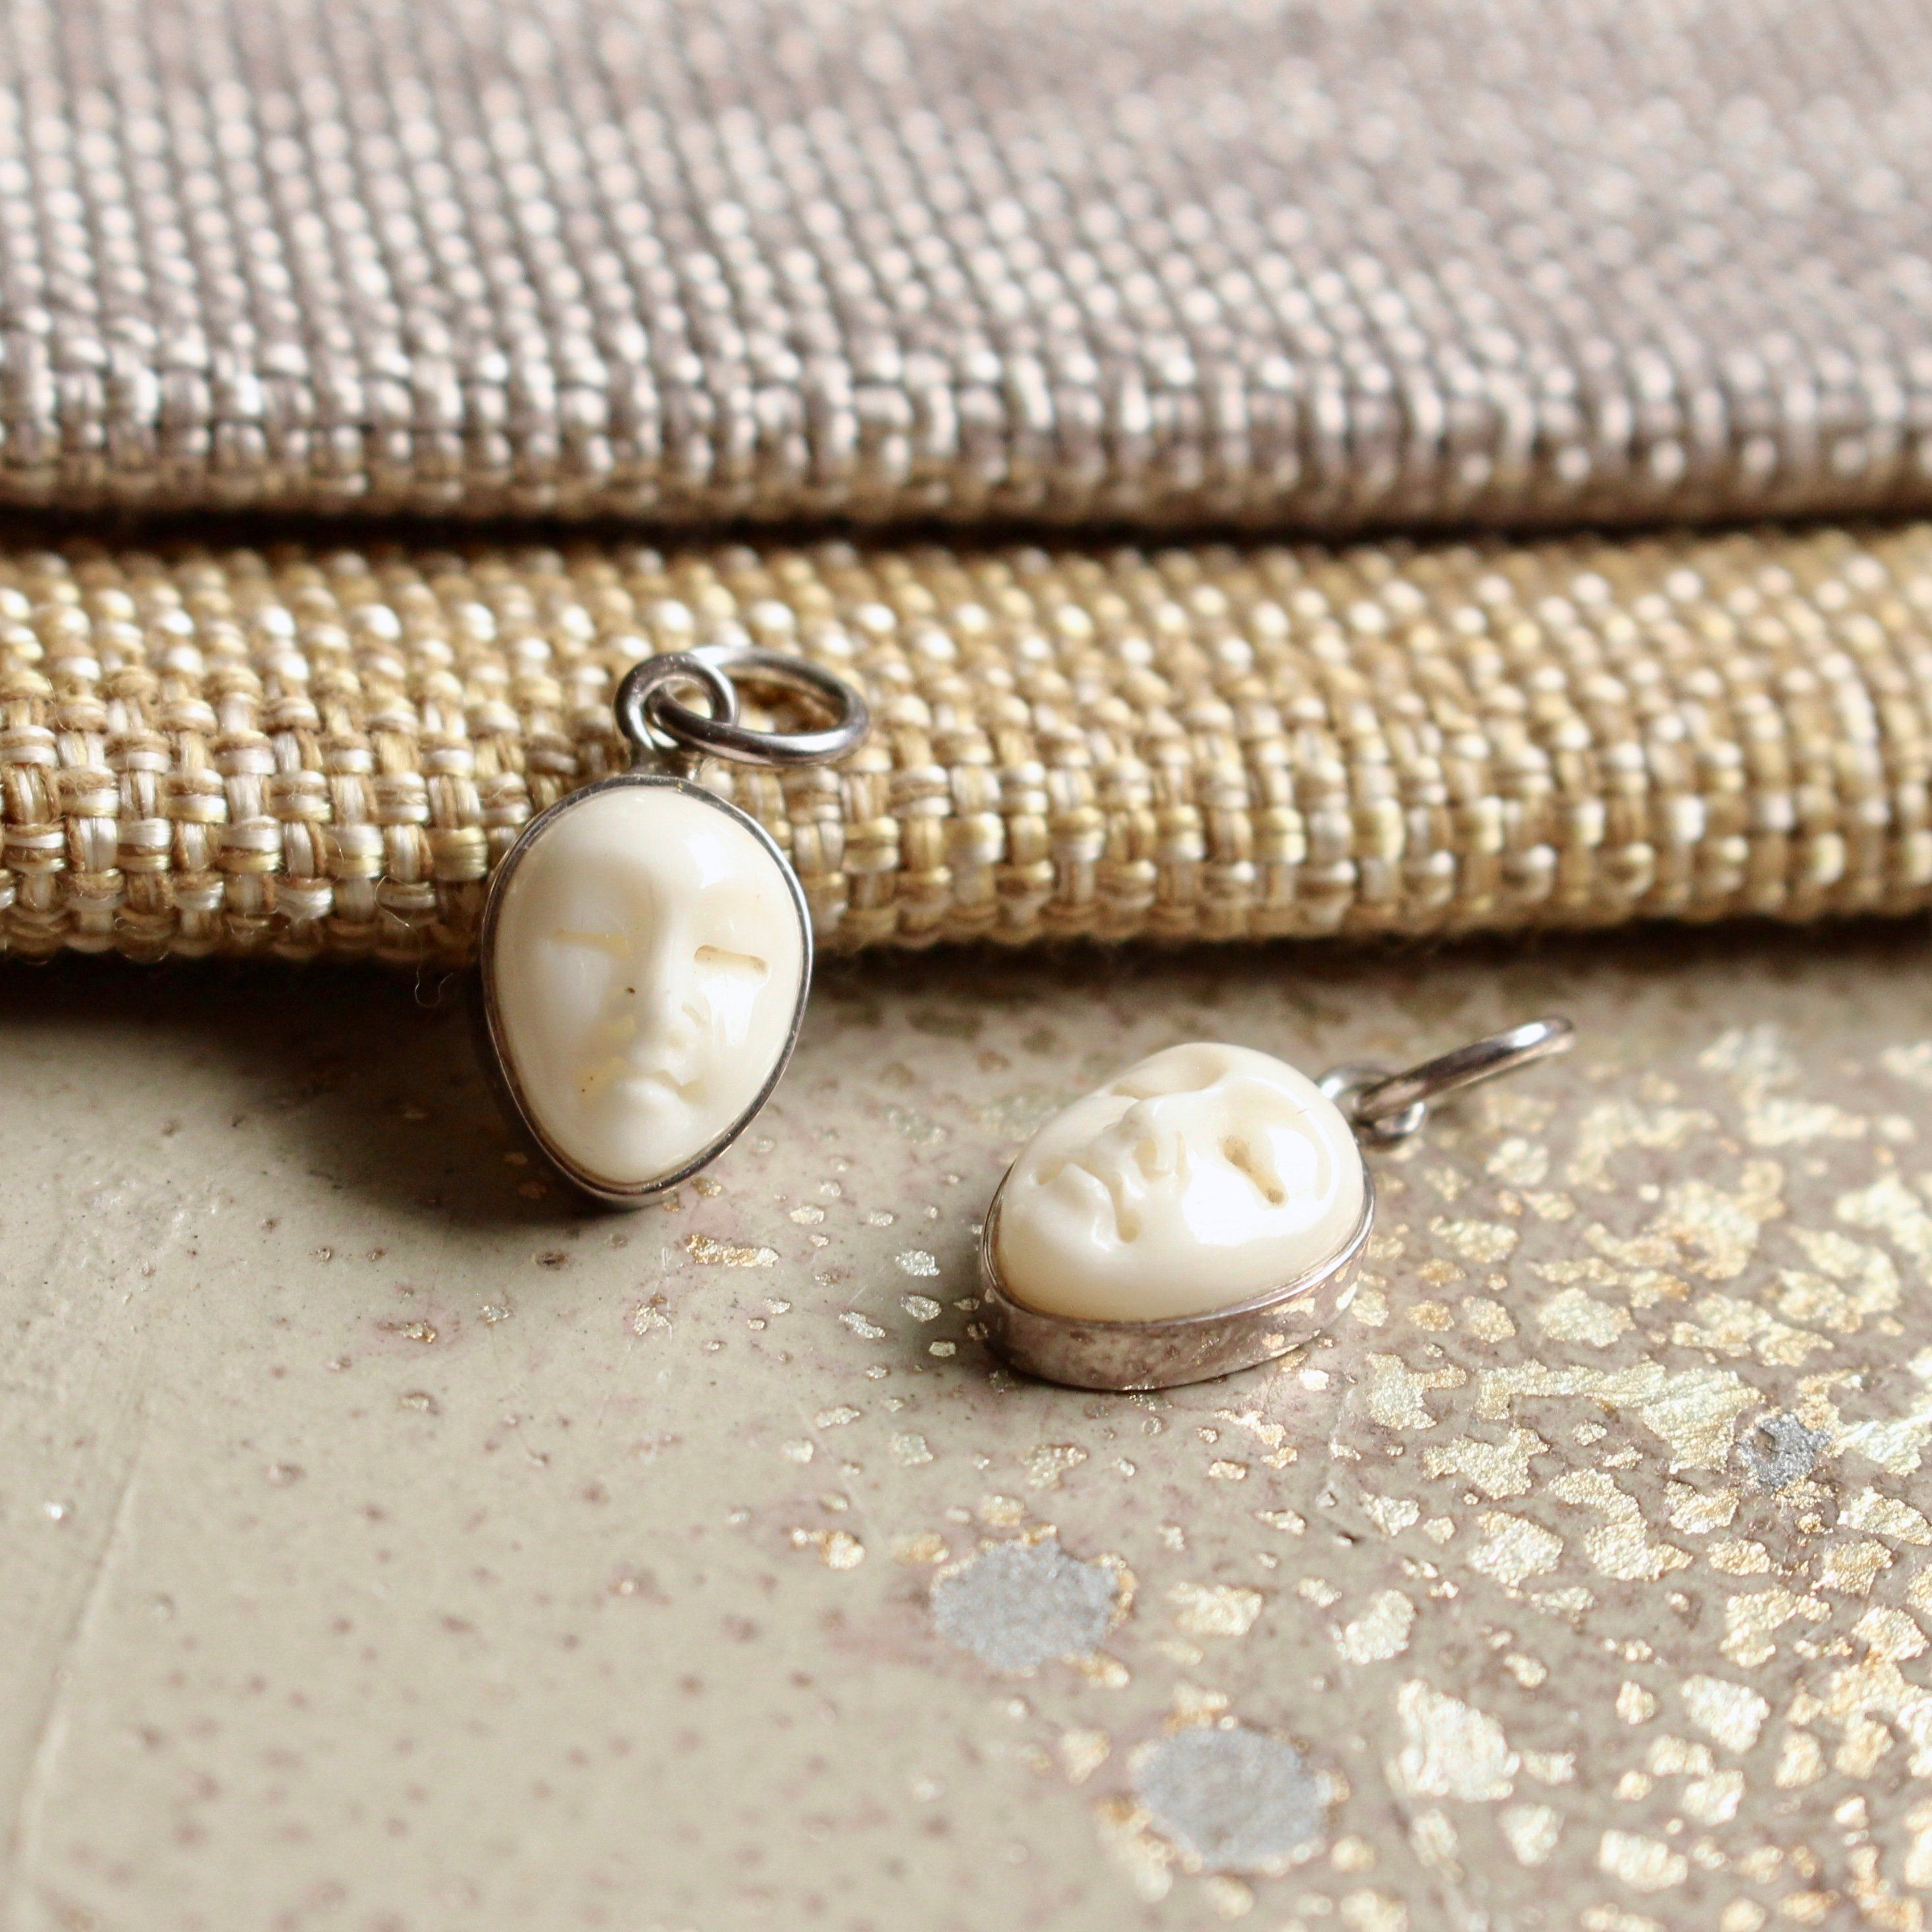 Tiny Carved Bone Moon Face Charm Goddess Charm Bone Carving Moonface Charm Sleeping Buddha Yoga Jewelry Boho Bs18 0621a Yoga Jewelry Boho Yoga Jewelry Diy Jewelry Making Supplies